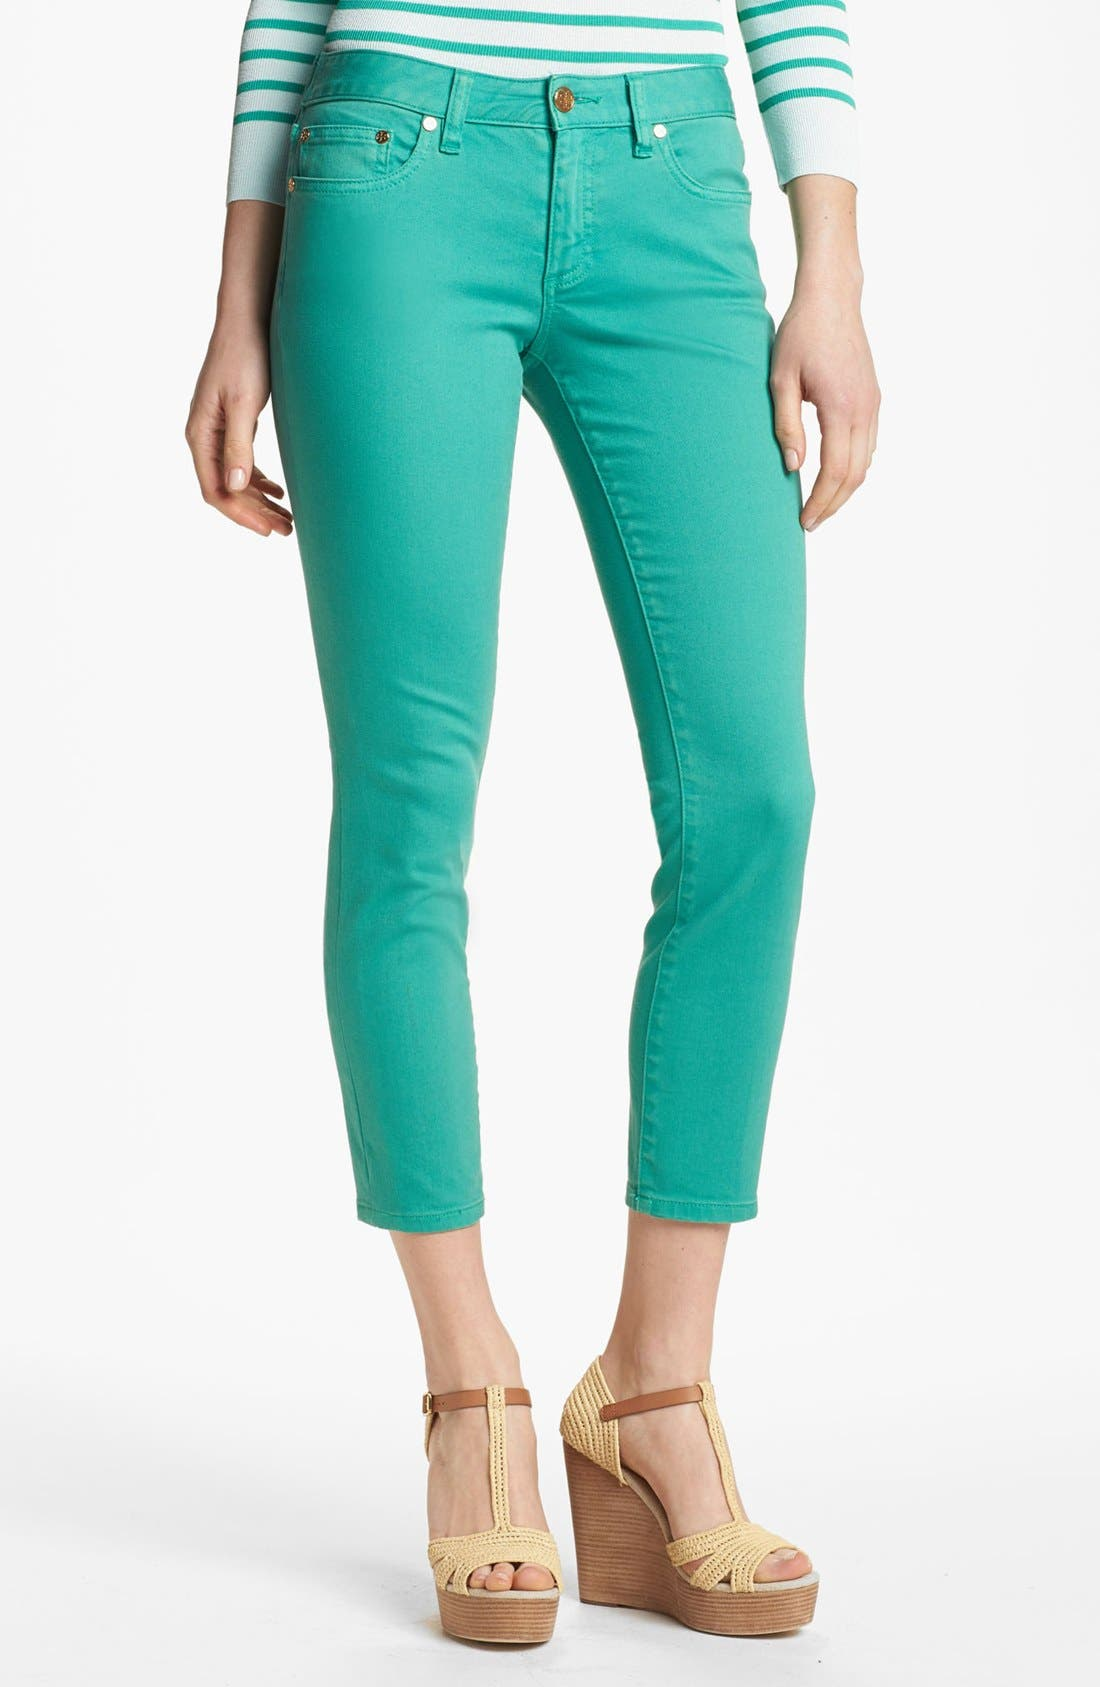 Alternate Image 1 Selected - Tory Burch 'Alexa' Skinny Crop Stretch Jeans (Viridian Green)